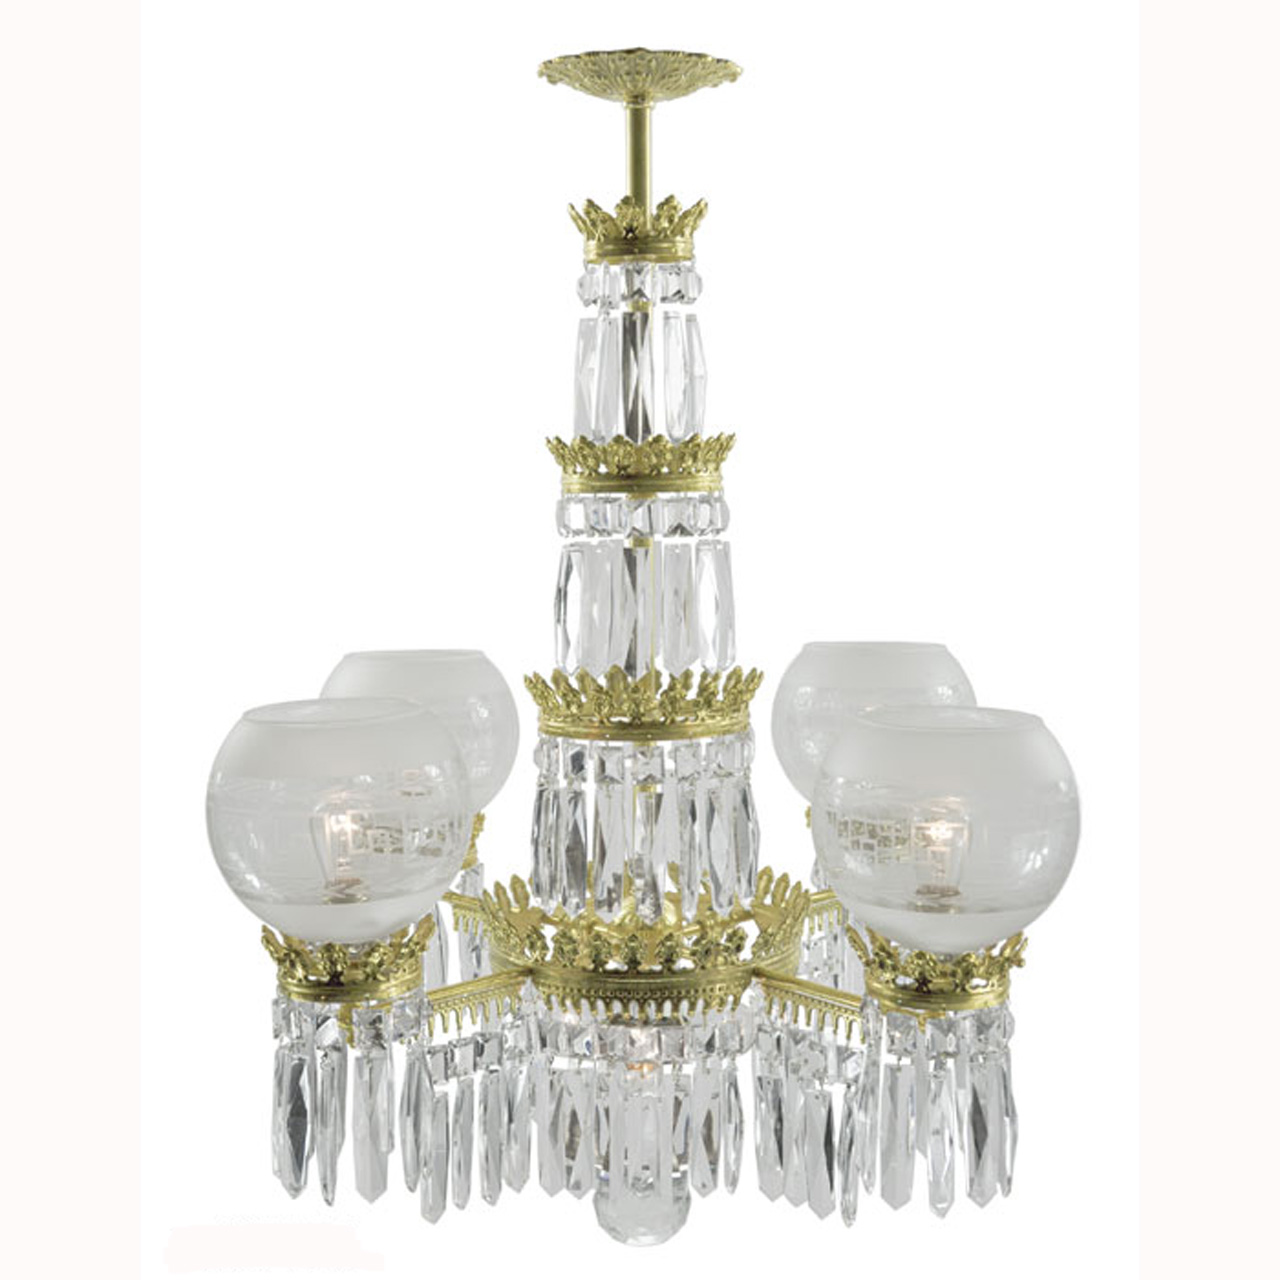 Antique original crystal gasolier style ceiling chandelier lighting antique original crystal gasolier style ceiling chandelier lighting ant 391 for sale aloadofball Images